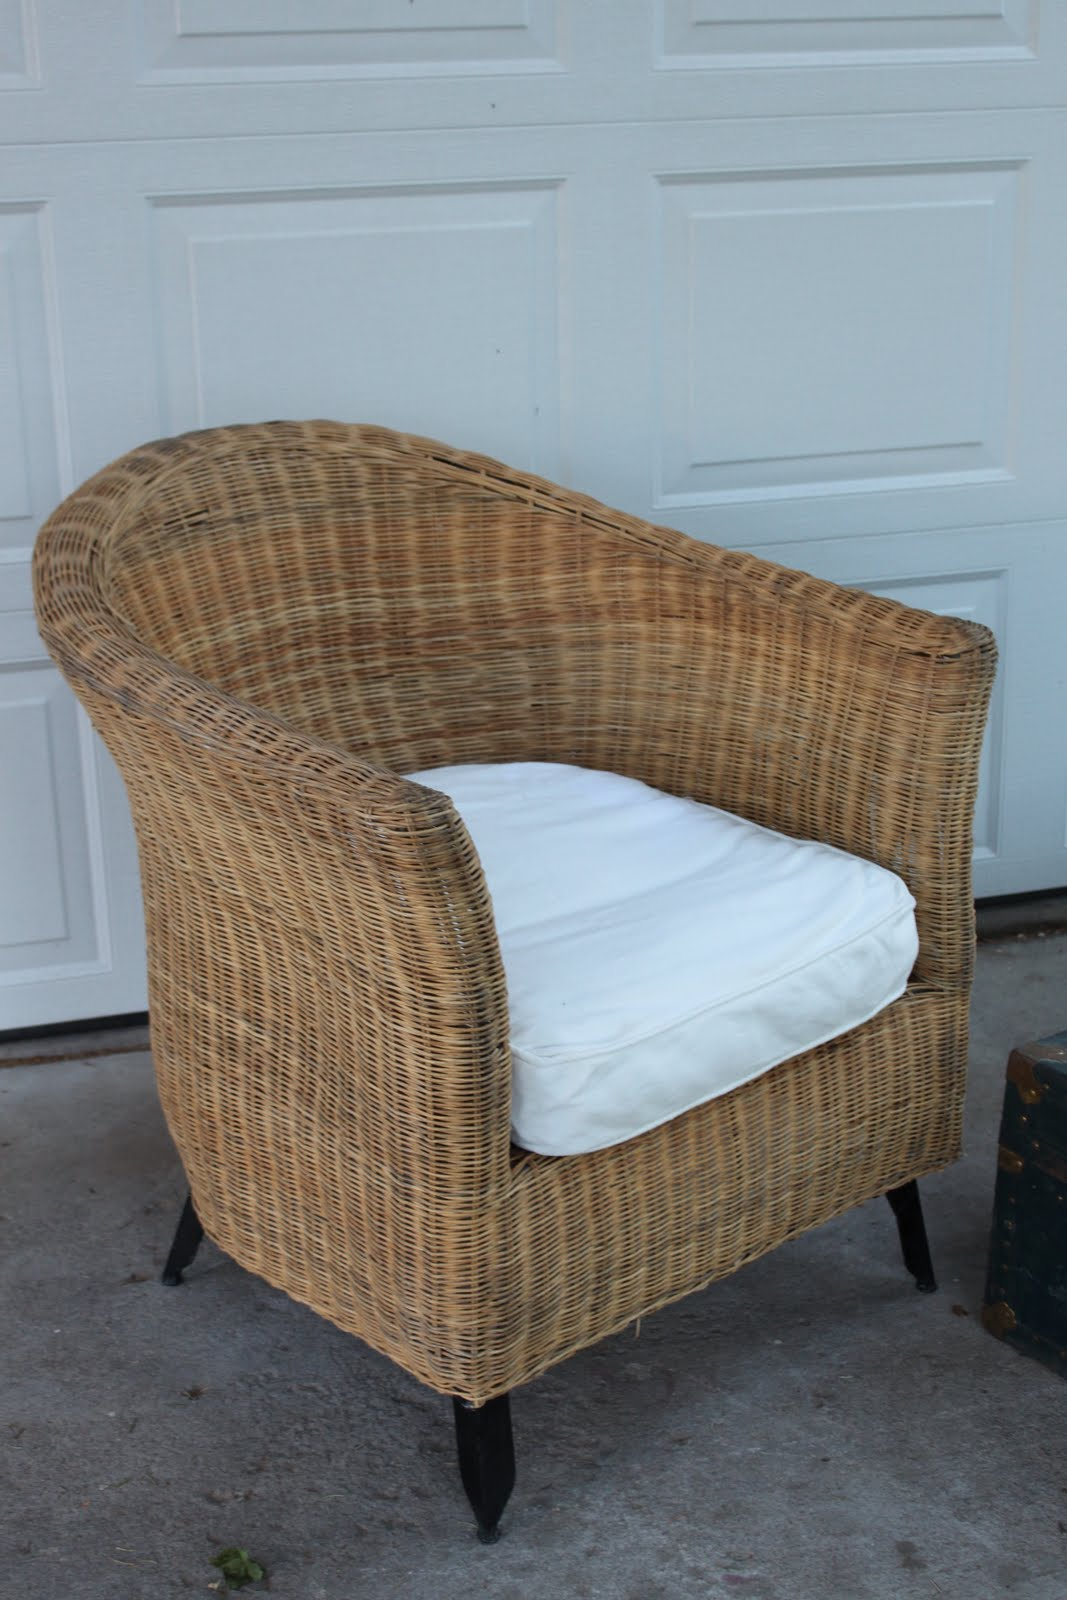 Pier One Rattan Chair Ikea Dining Covers Australia Pin Bedroom Furniture On Pinterest